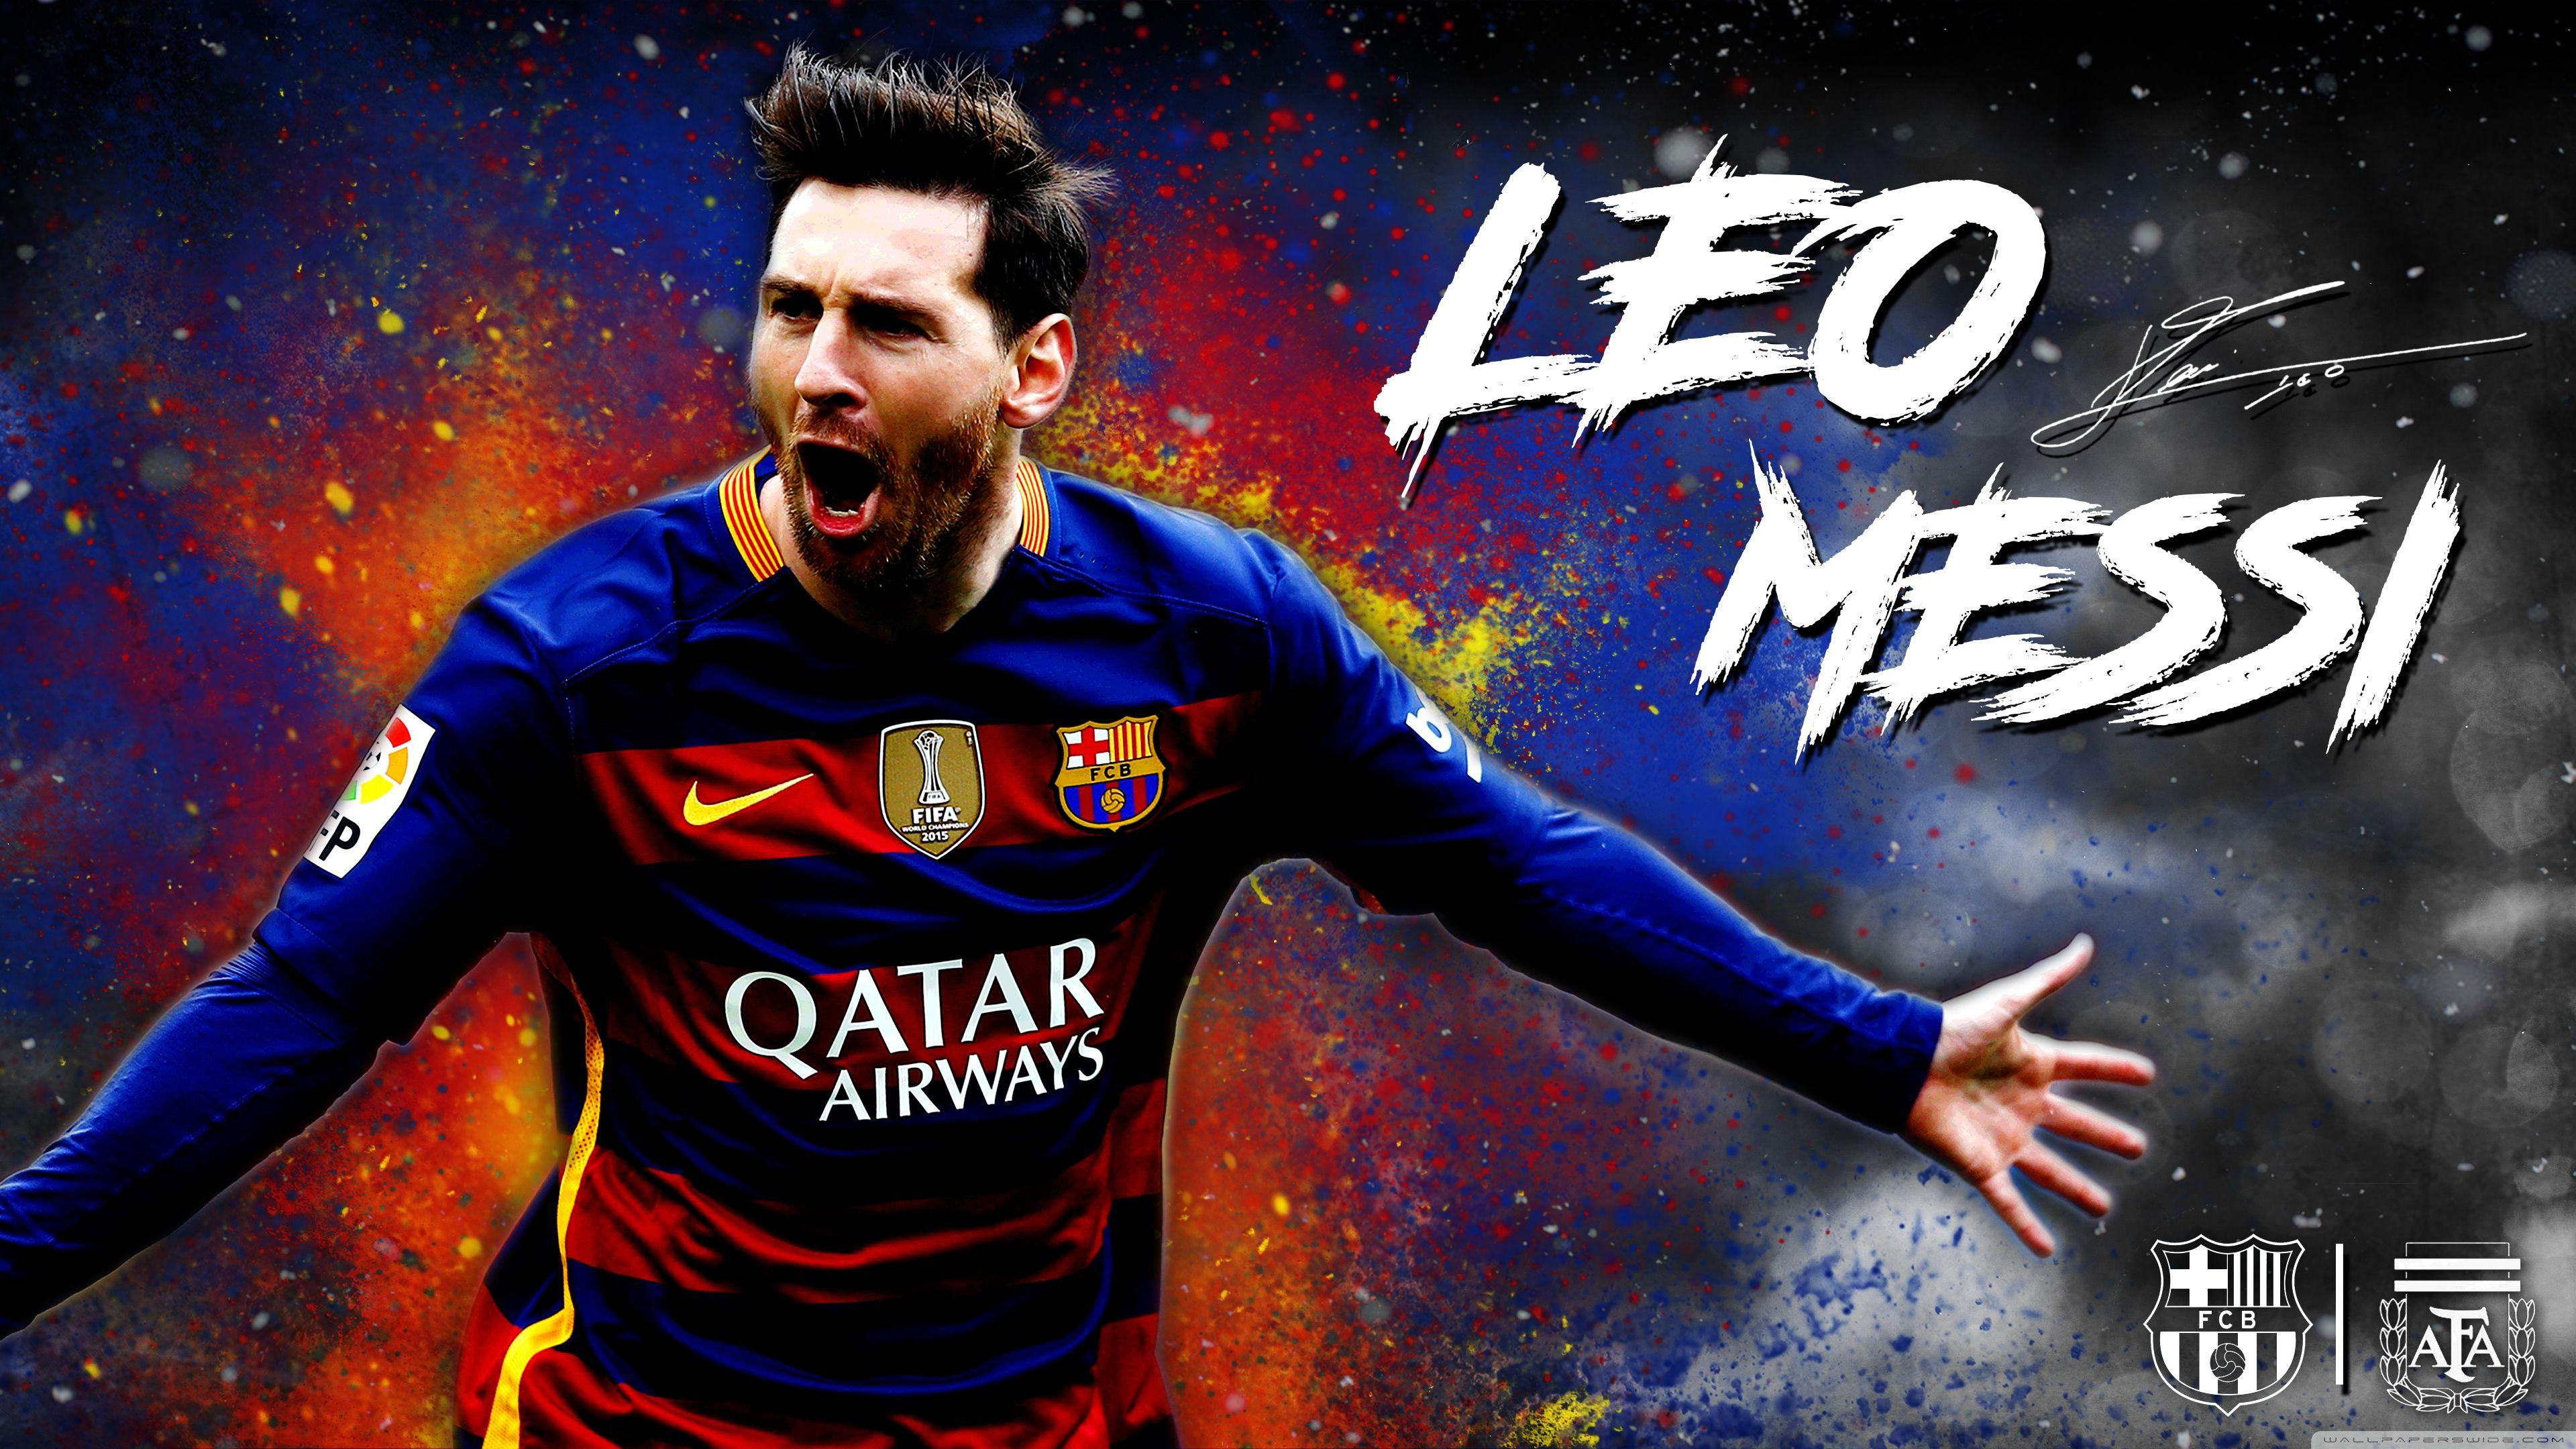 Messi Wallpaper 2020 Desktop